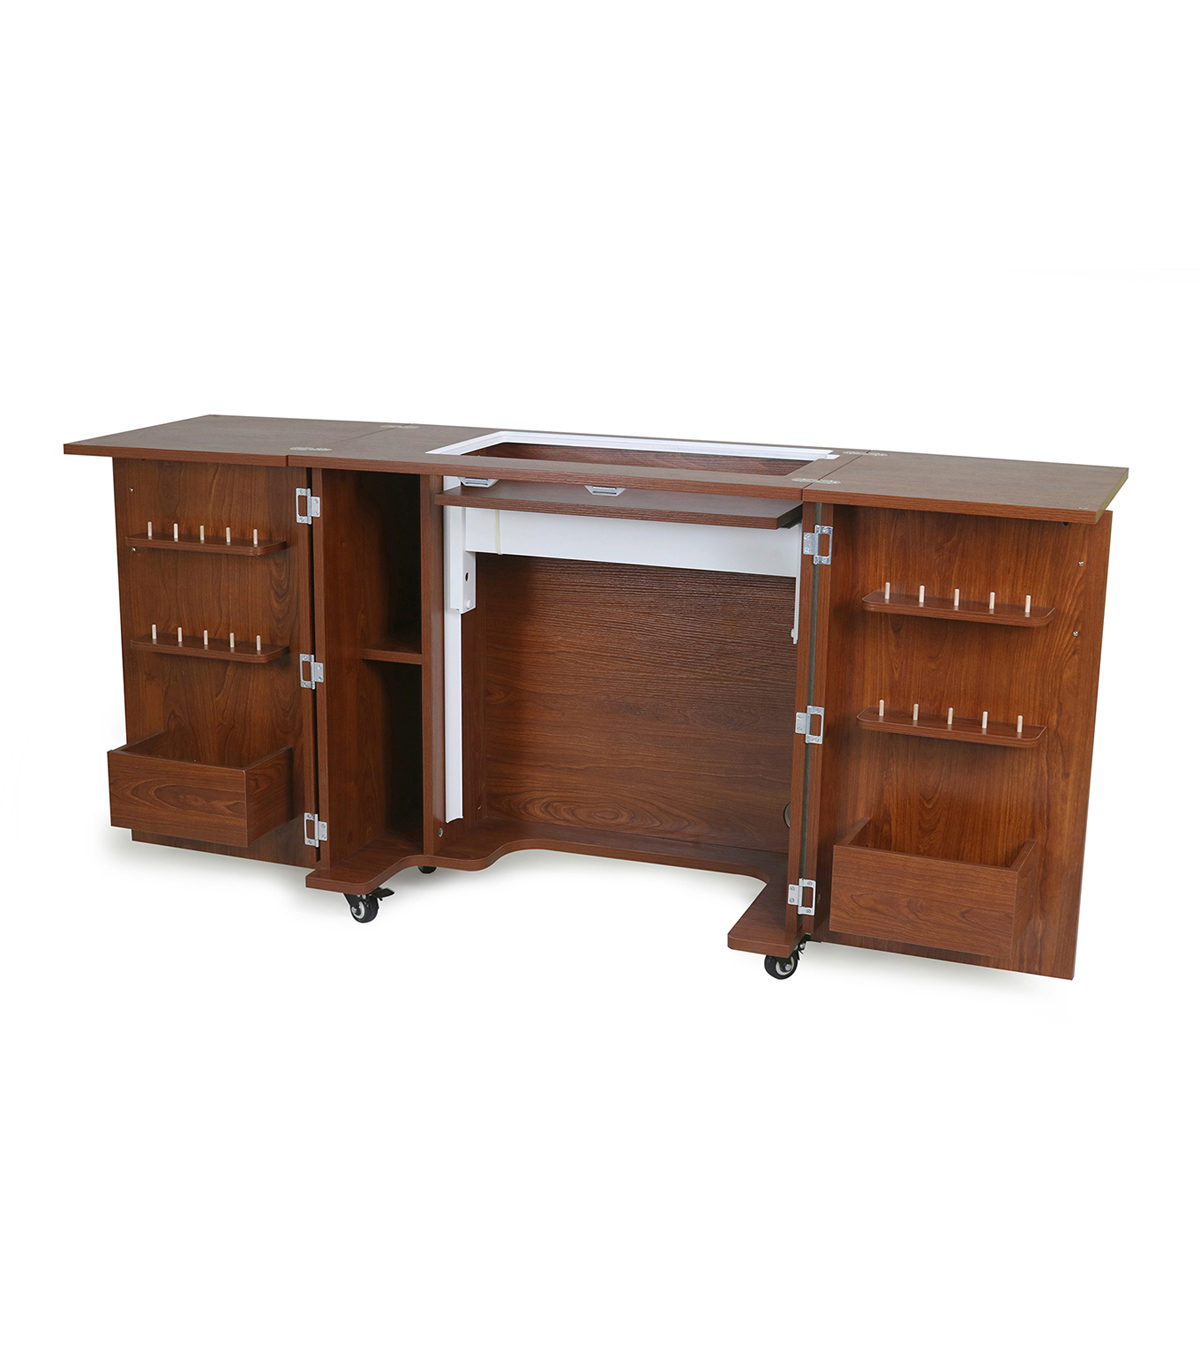 Bandicoot Teak Sewing Cabinet